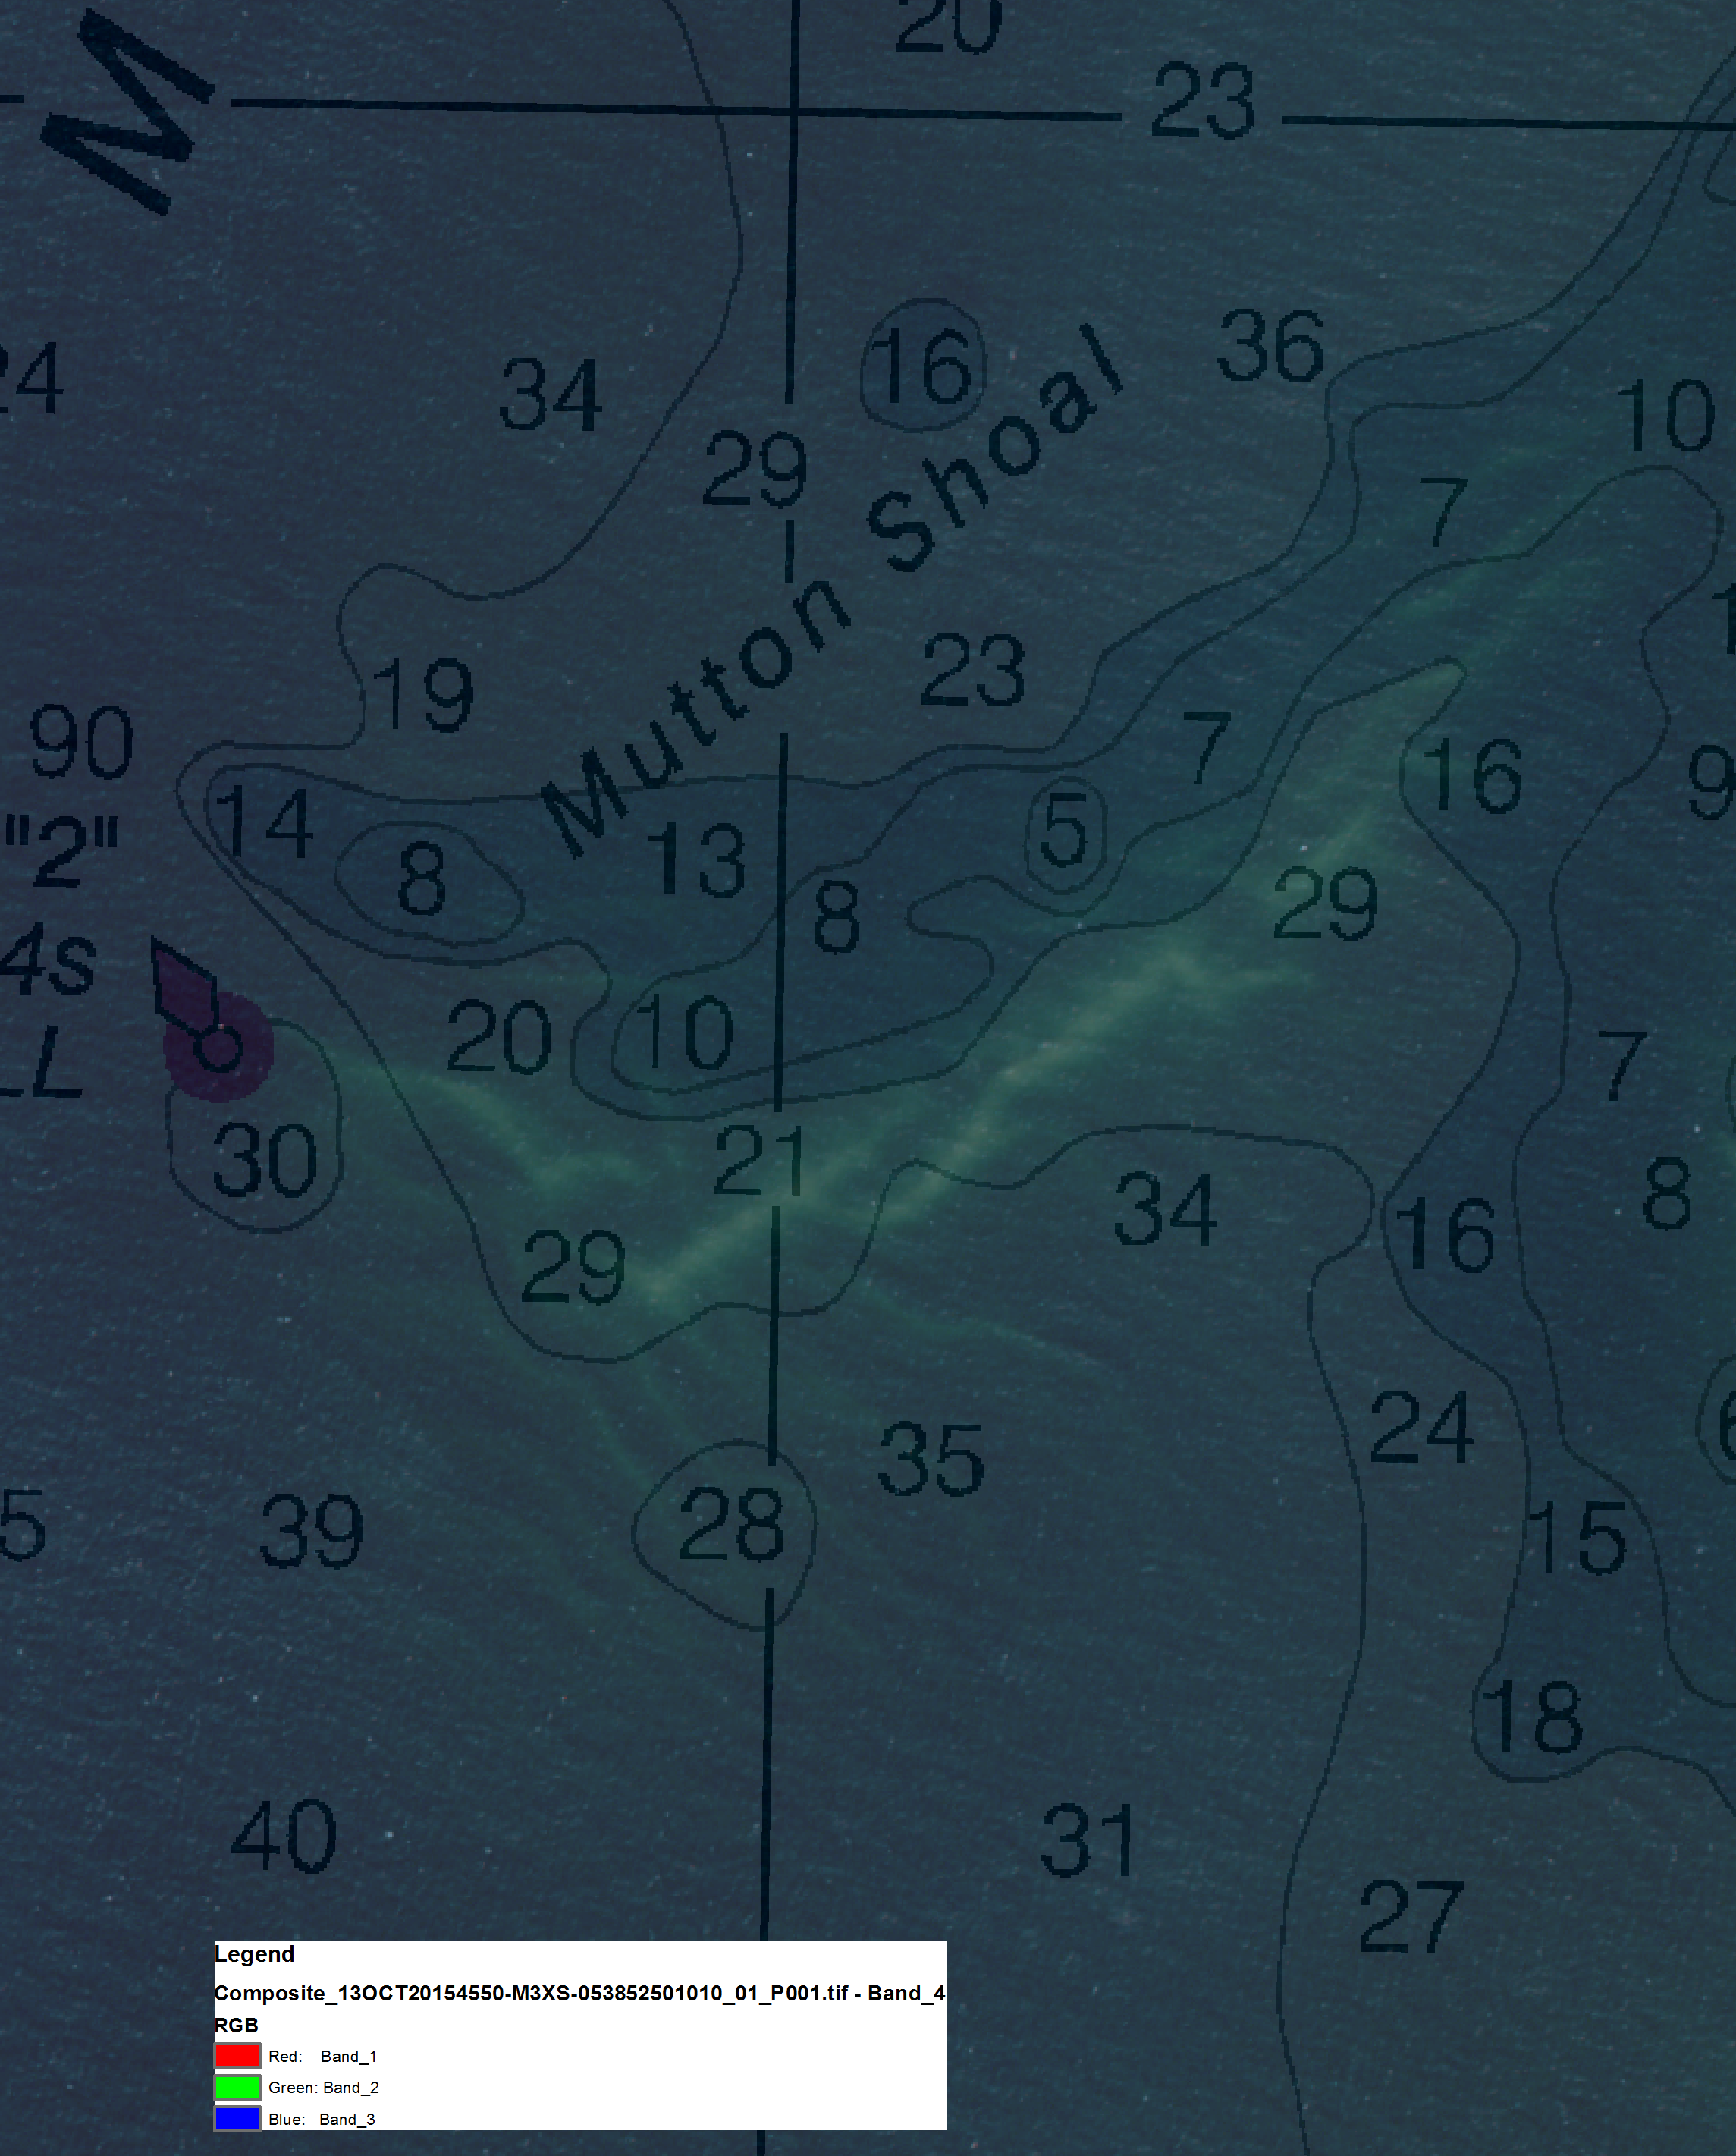 Noaa ship thomas jefferson noaa coast survey multi spectral satellite imagery of mutton shoal in nantucket sound overlaid on the chart geenschuldenfo Choice Image